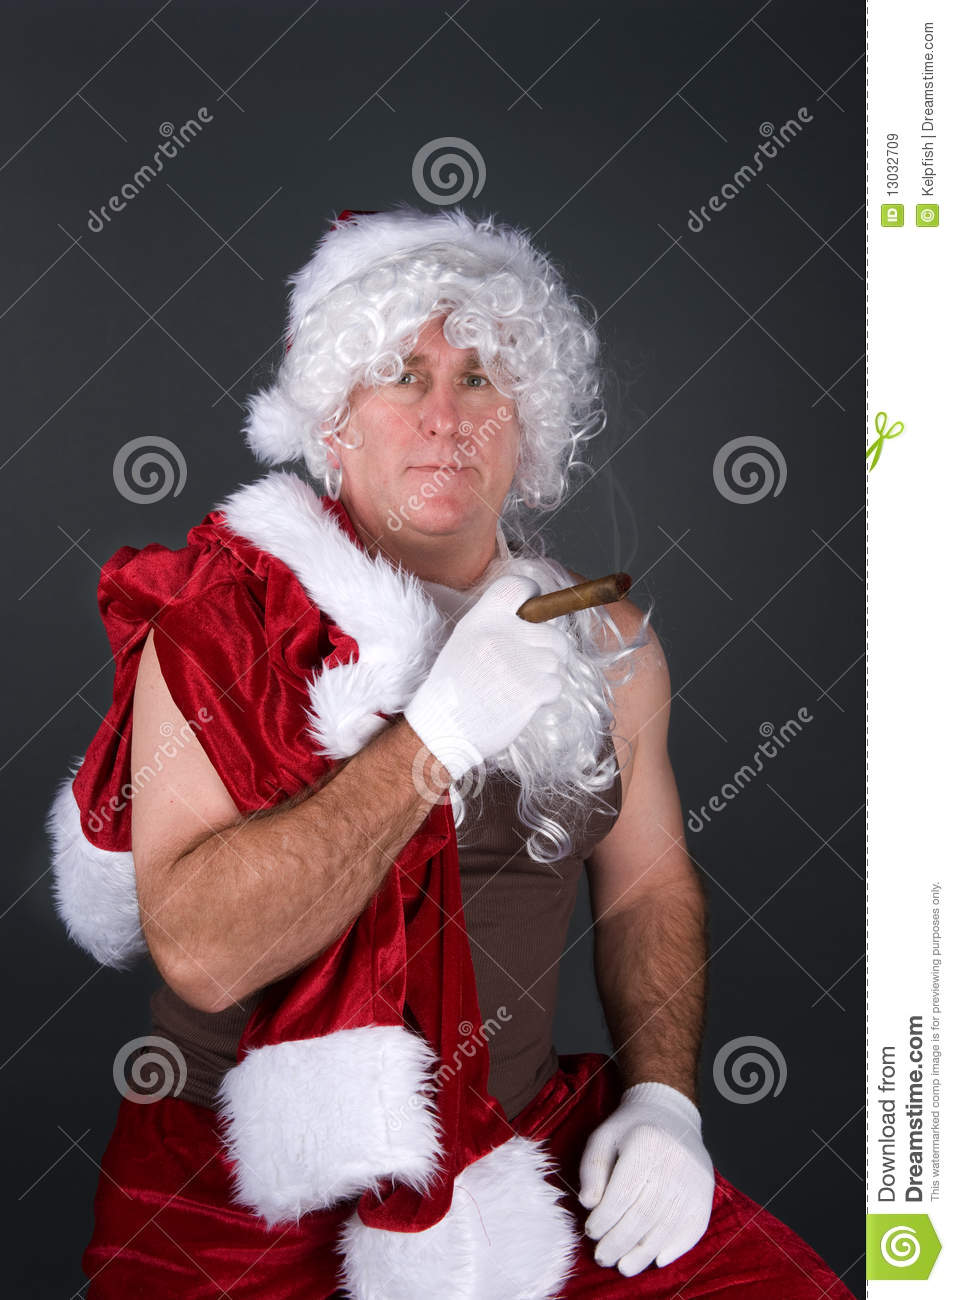 daddy santa claus smoking a cigar royalty free stock